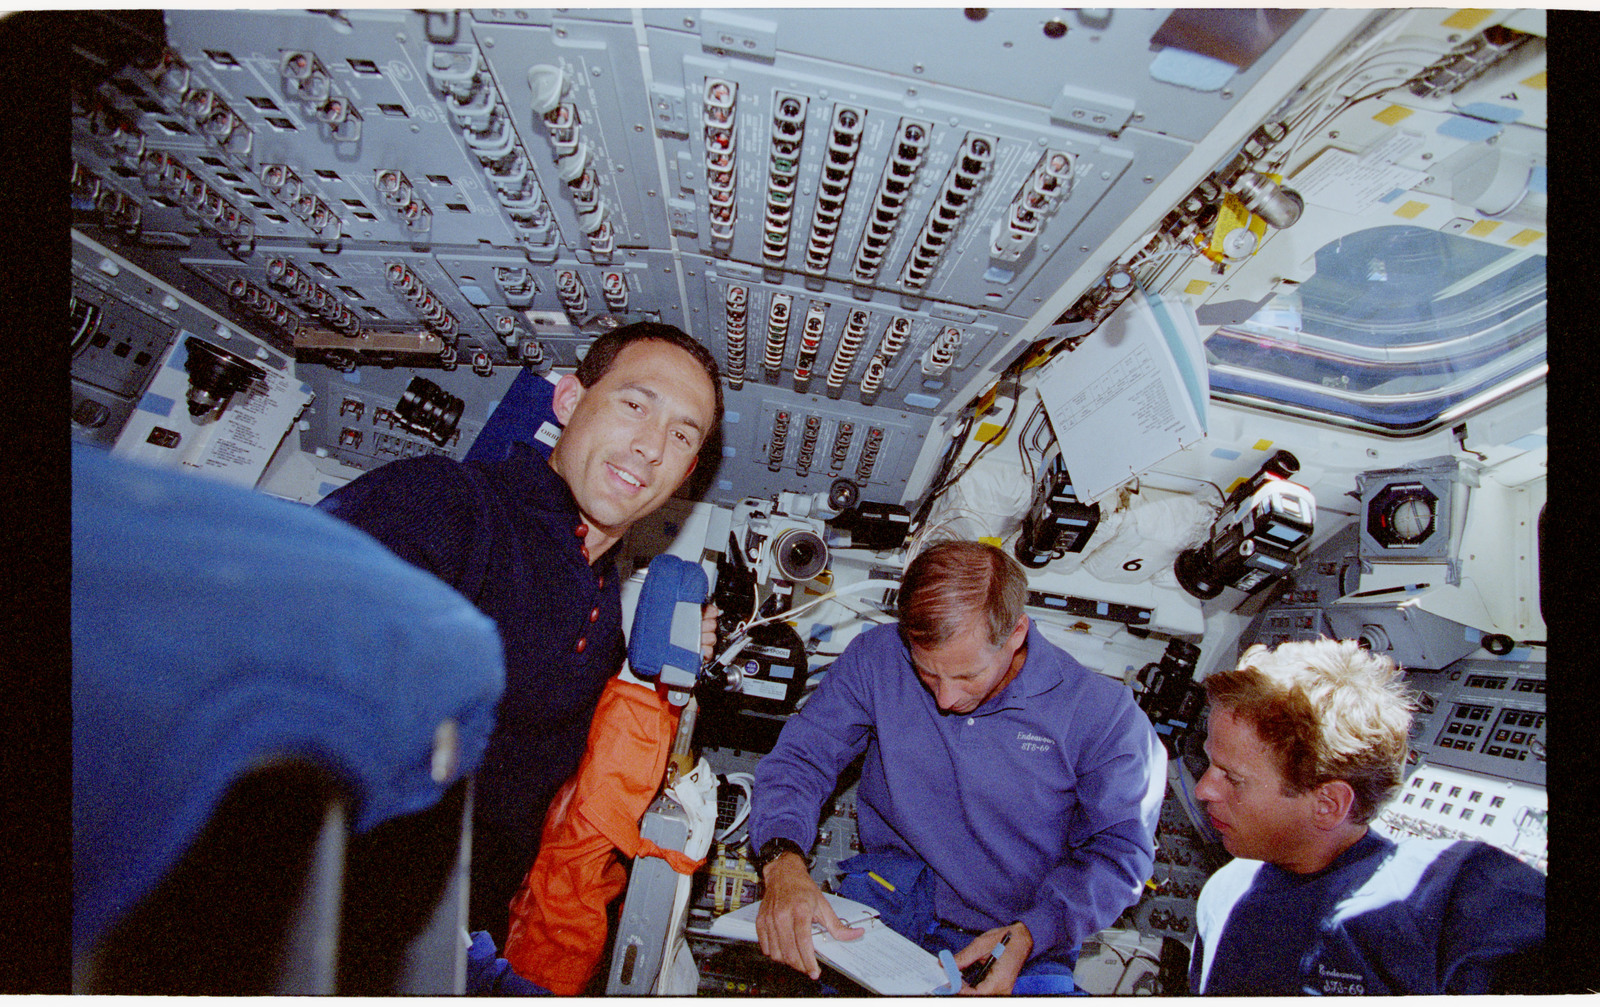 STS069-363-015 - STS-069 - STS-69 crewmembers on Endeavour's flight deck